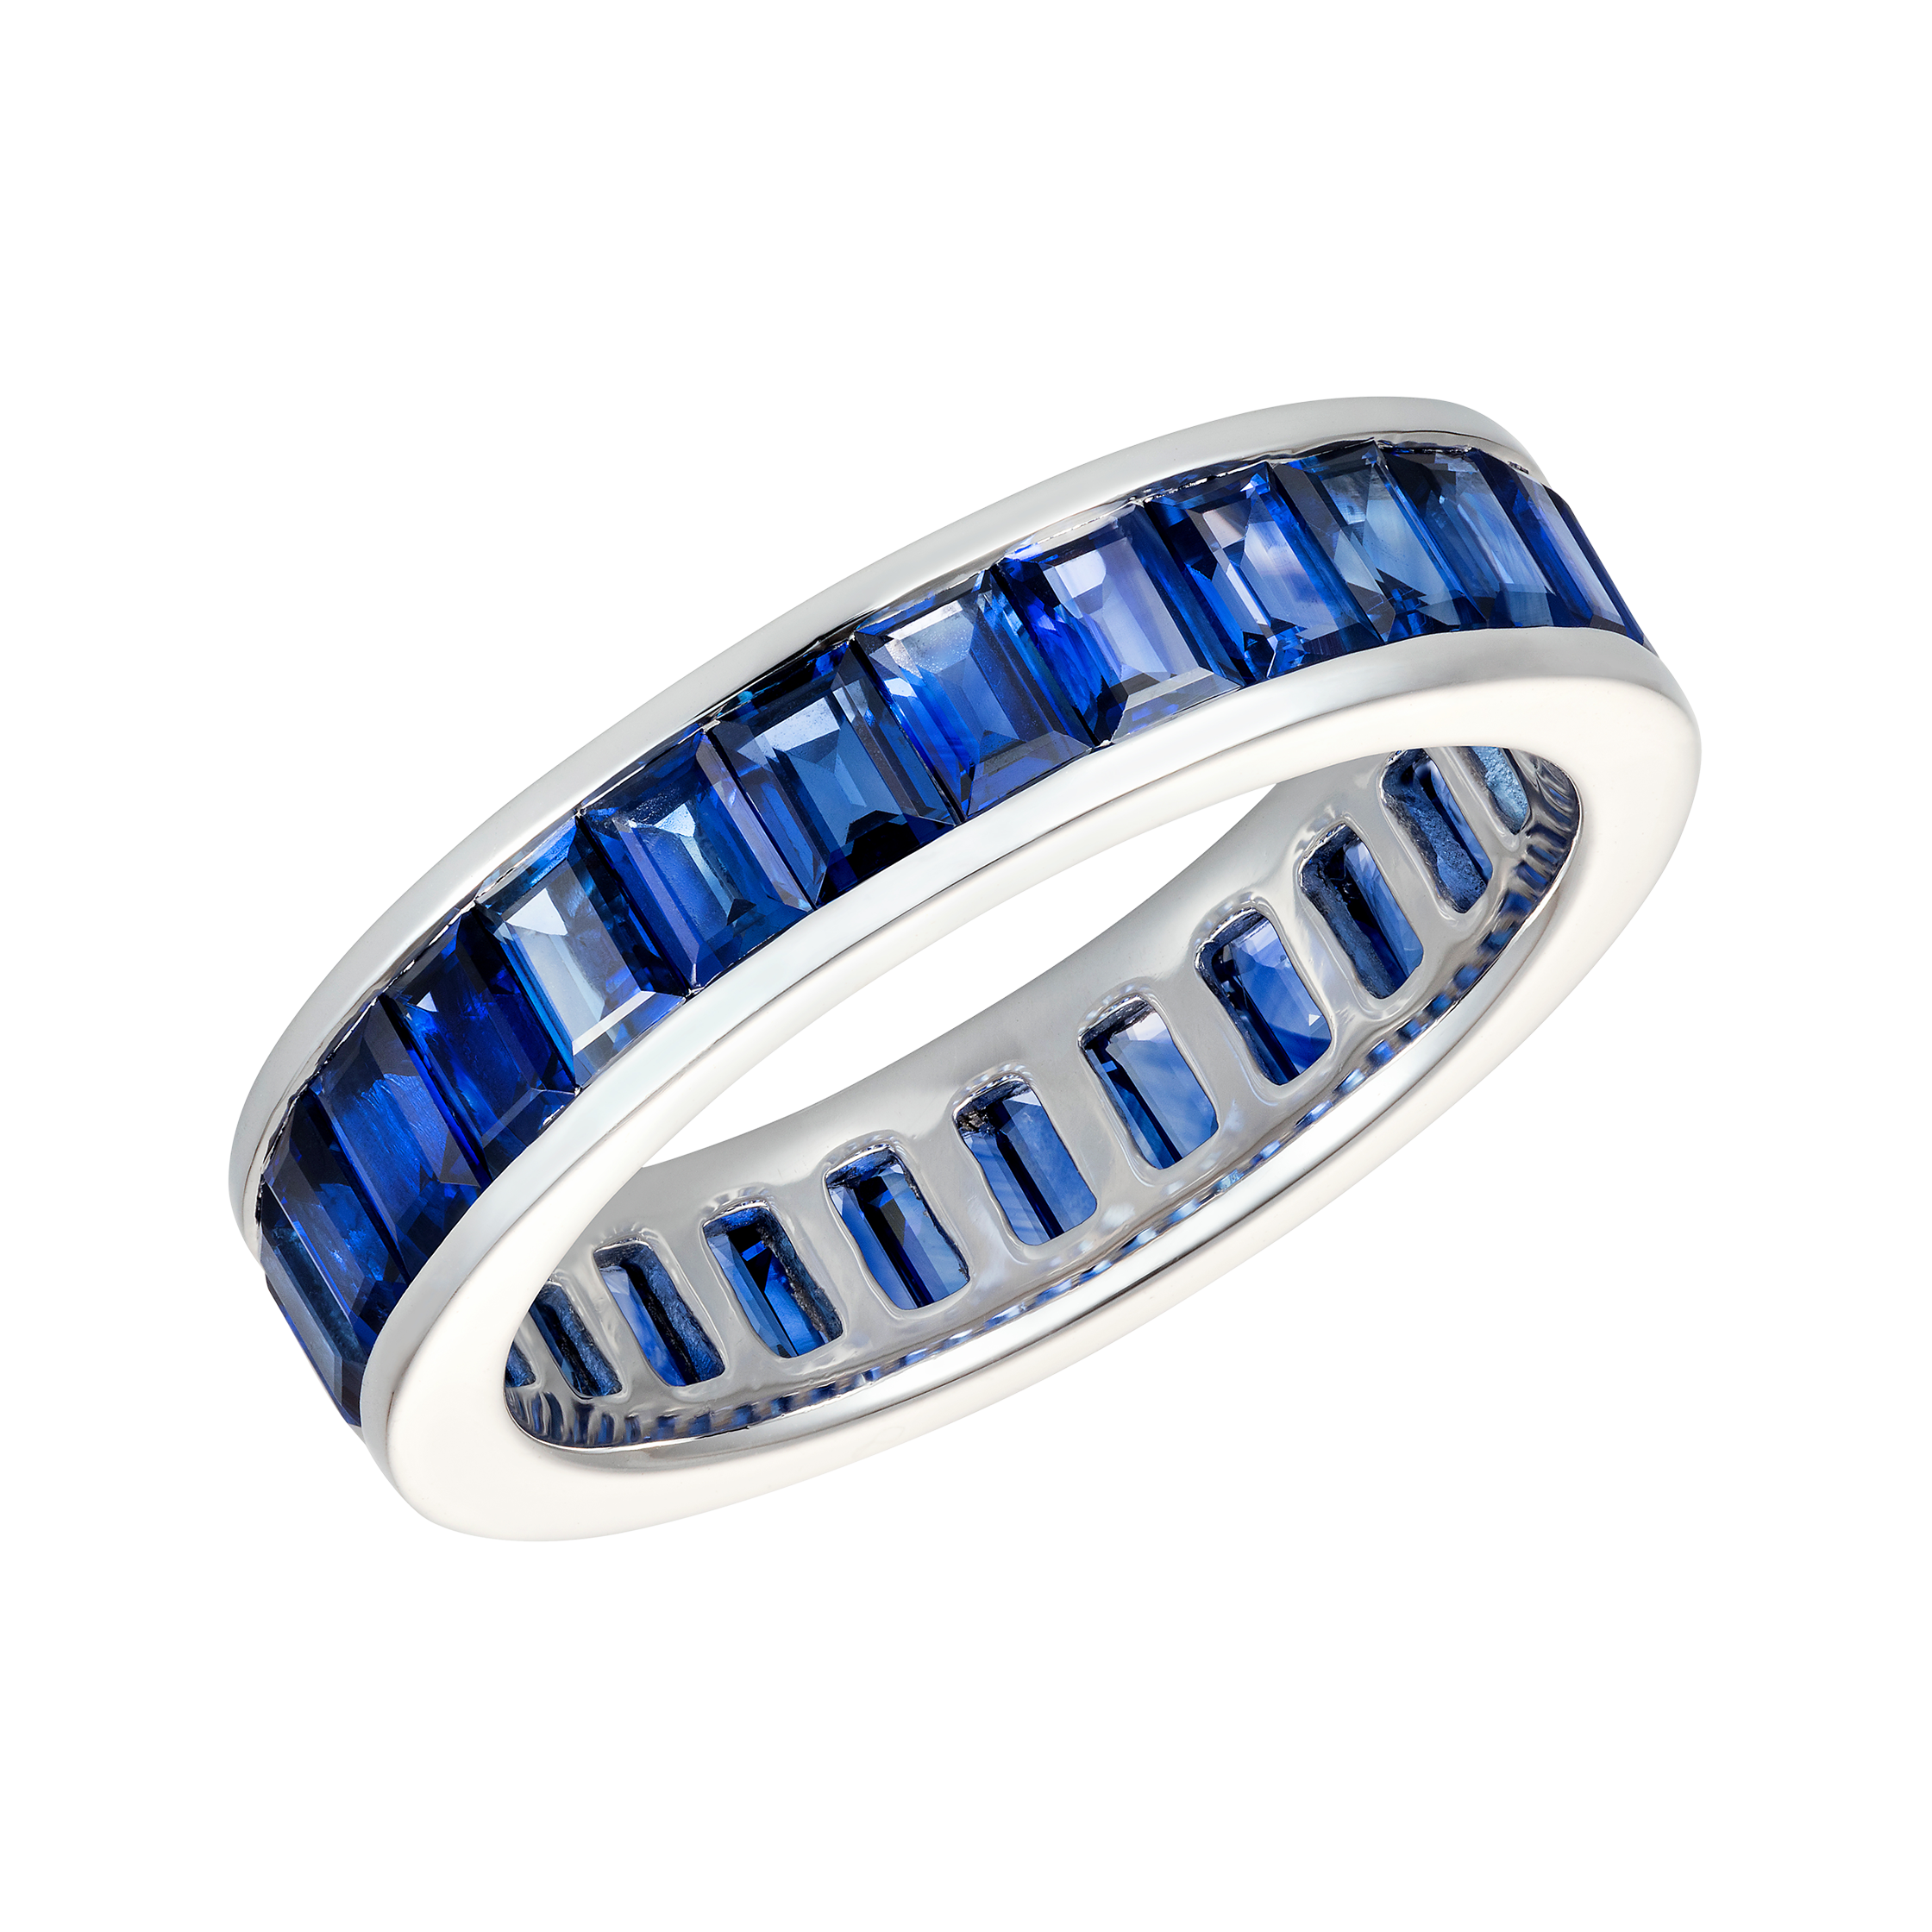 subsampling crop the saffire david product rings engagement ceylon false jewellery morris ring sapphire upscale blue shop scale